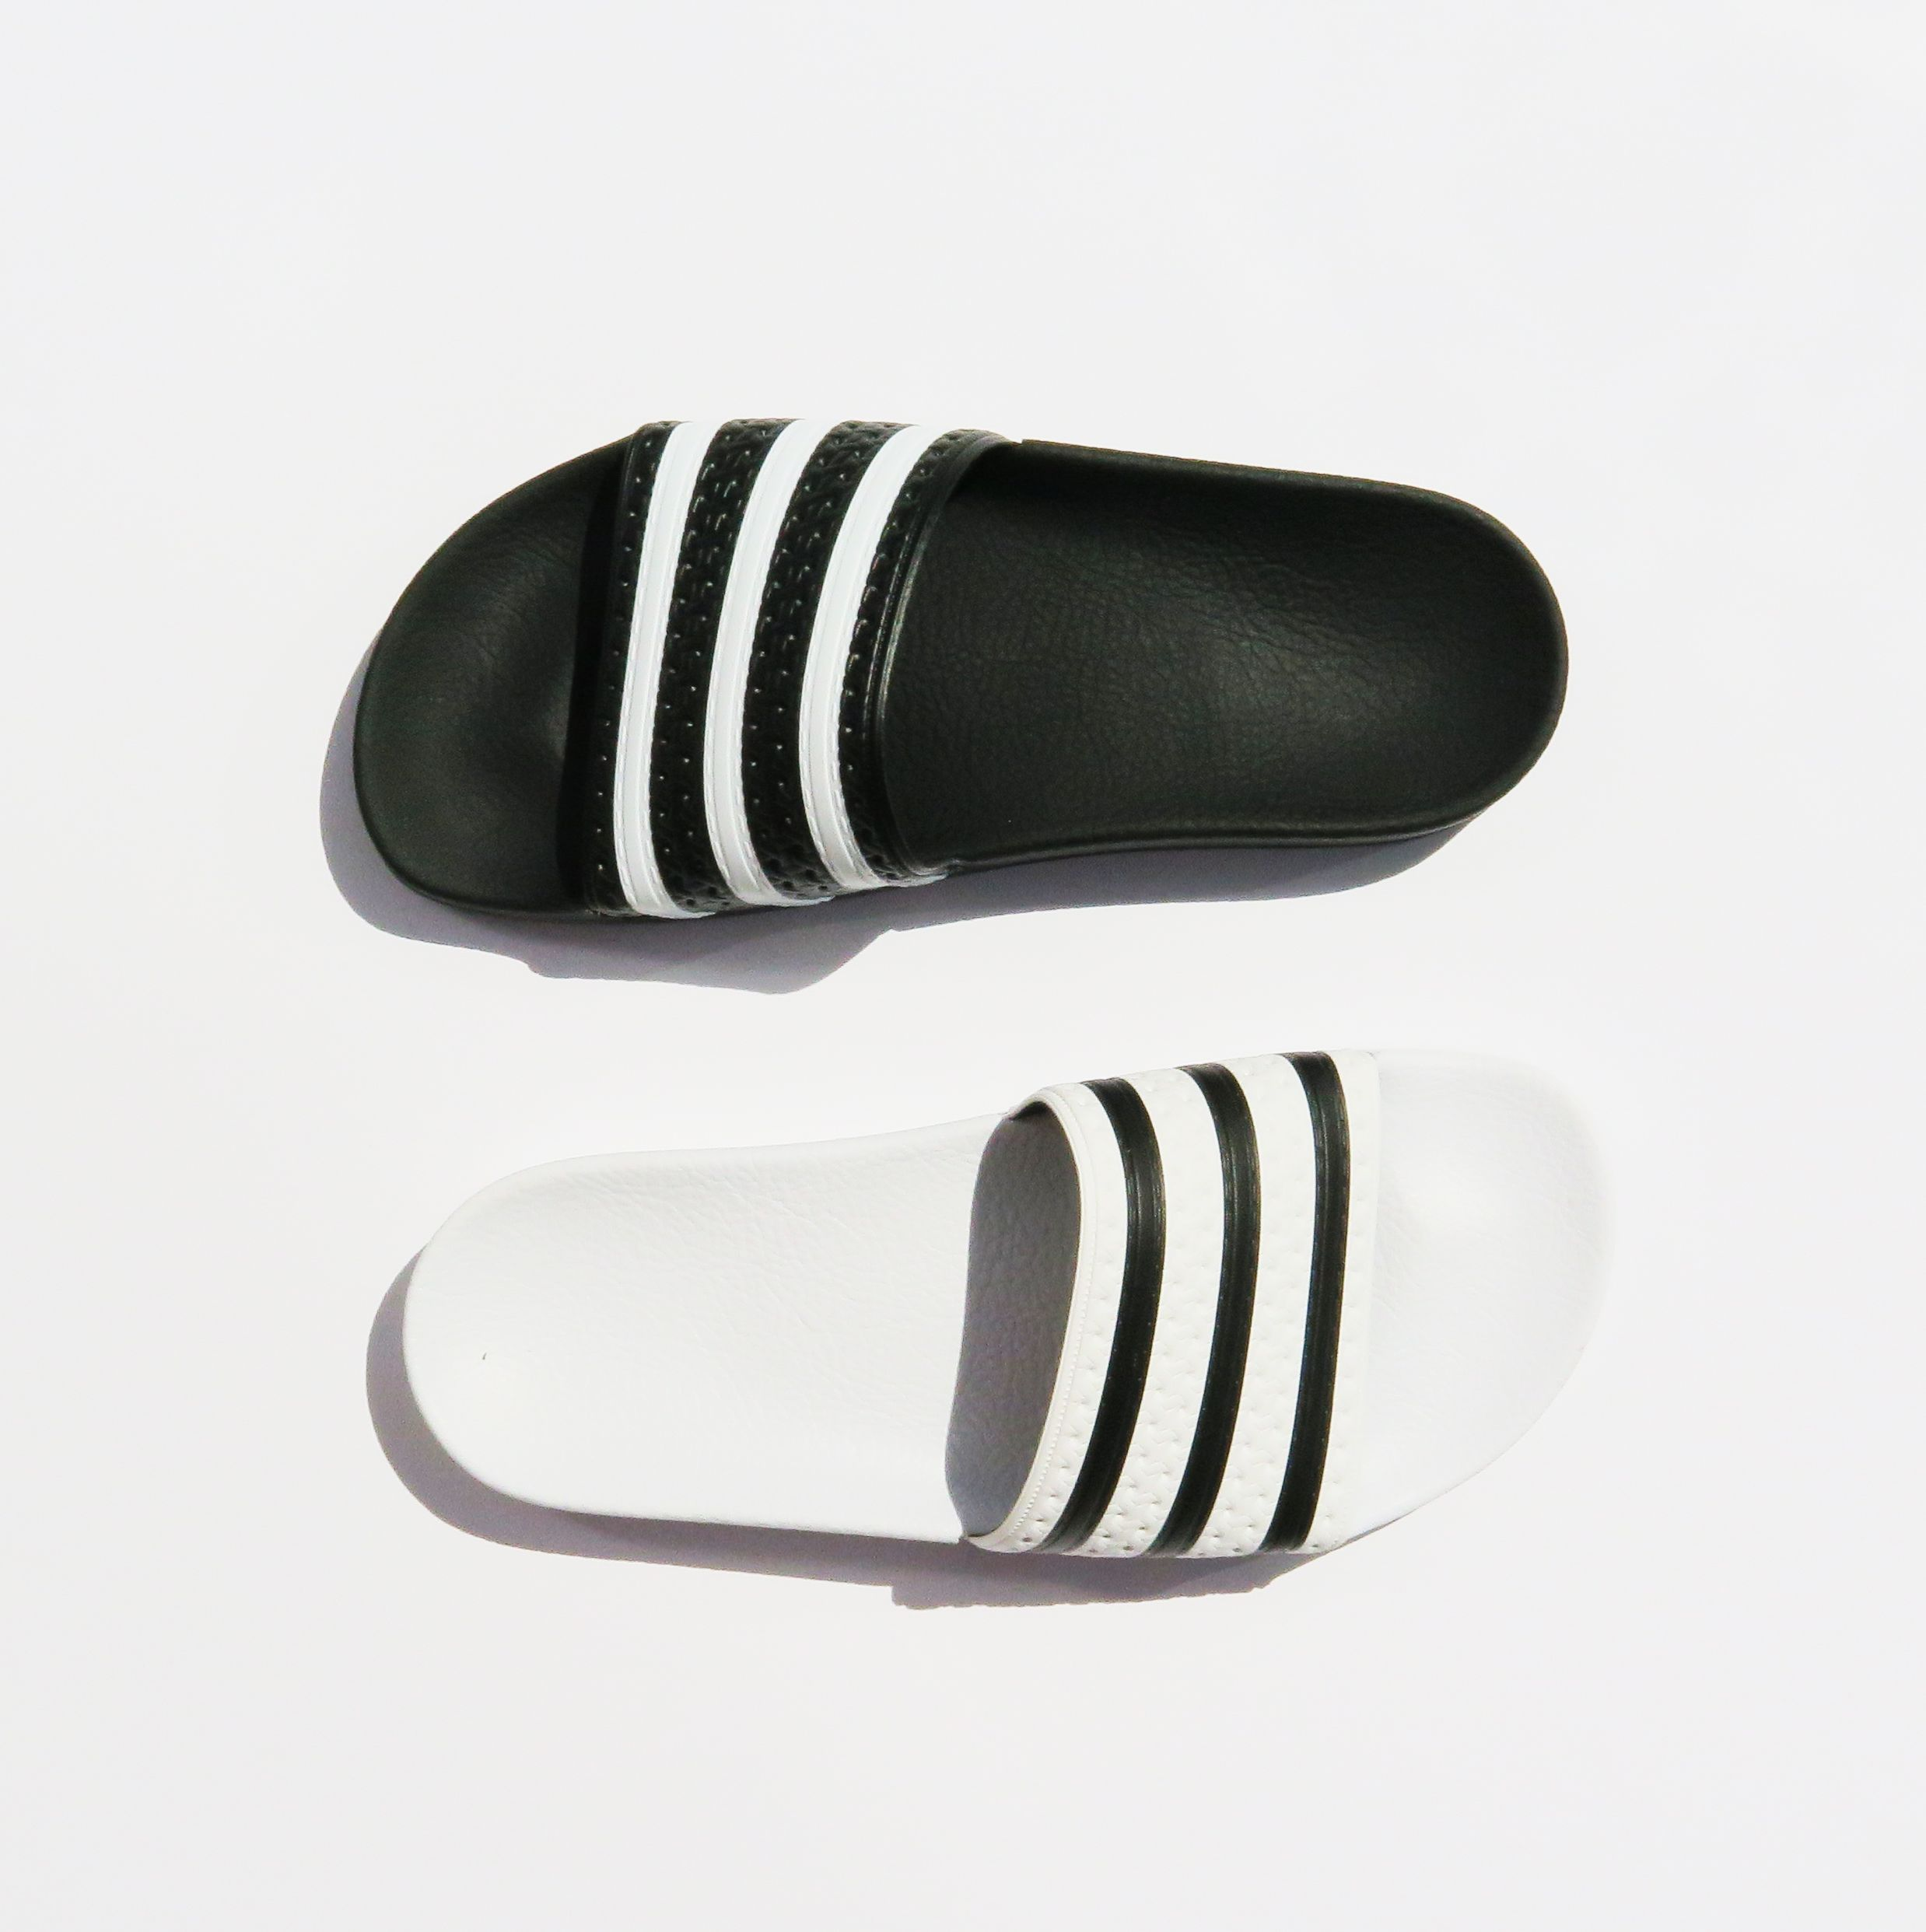 Adidas | adidas shoes in 2019 | Adidas slides, Adidas shoes